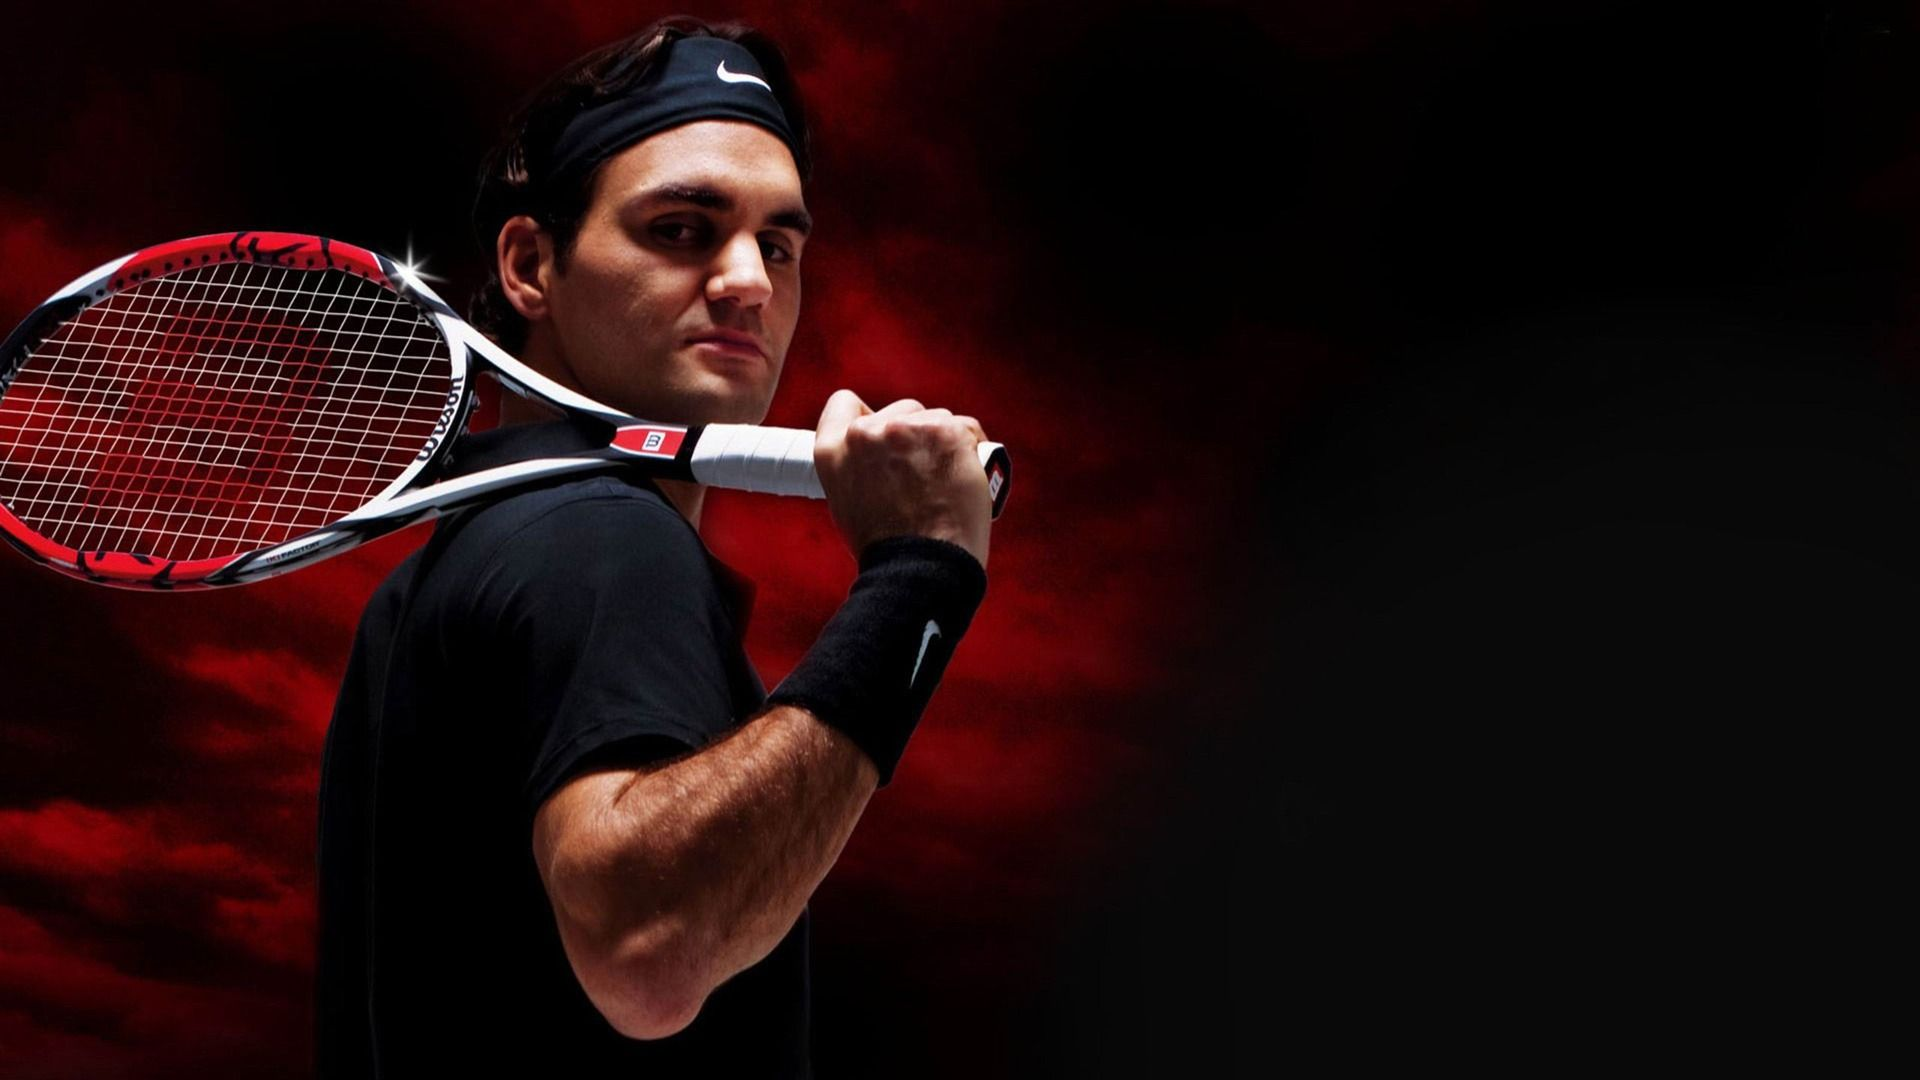 Tennis Hd Wallpapers Free Download Roger Federer Tennis Tennis Stars